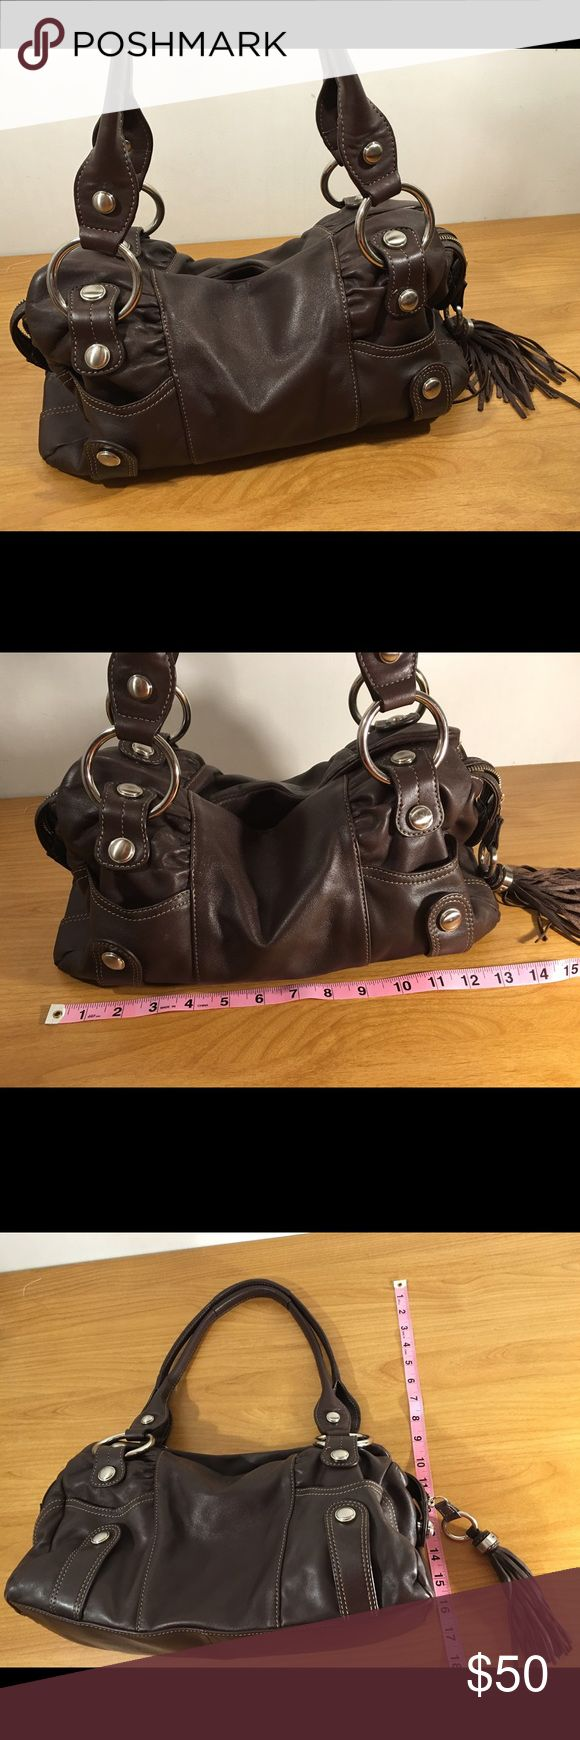 B Makowsky Large Brown Leather Satchel Handbag This chocolate brown with silver hardware purse is in very good condition. Please see pics for more details on condition and measurements. Thanks!! b. makowsky Bags Satchels